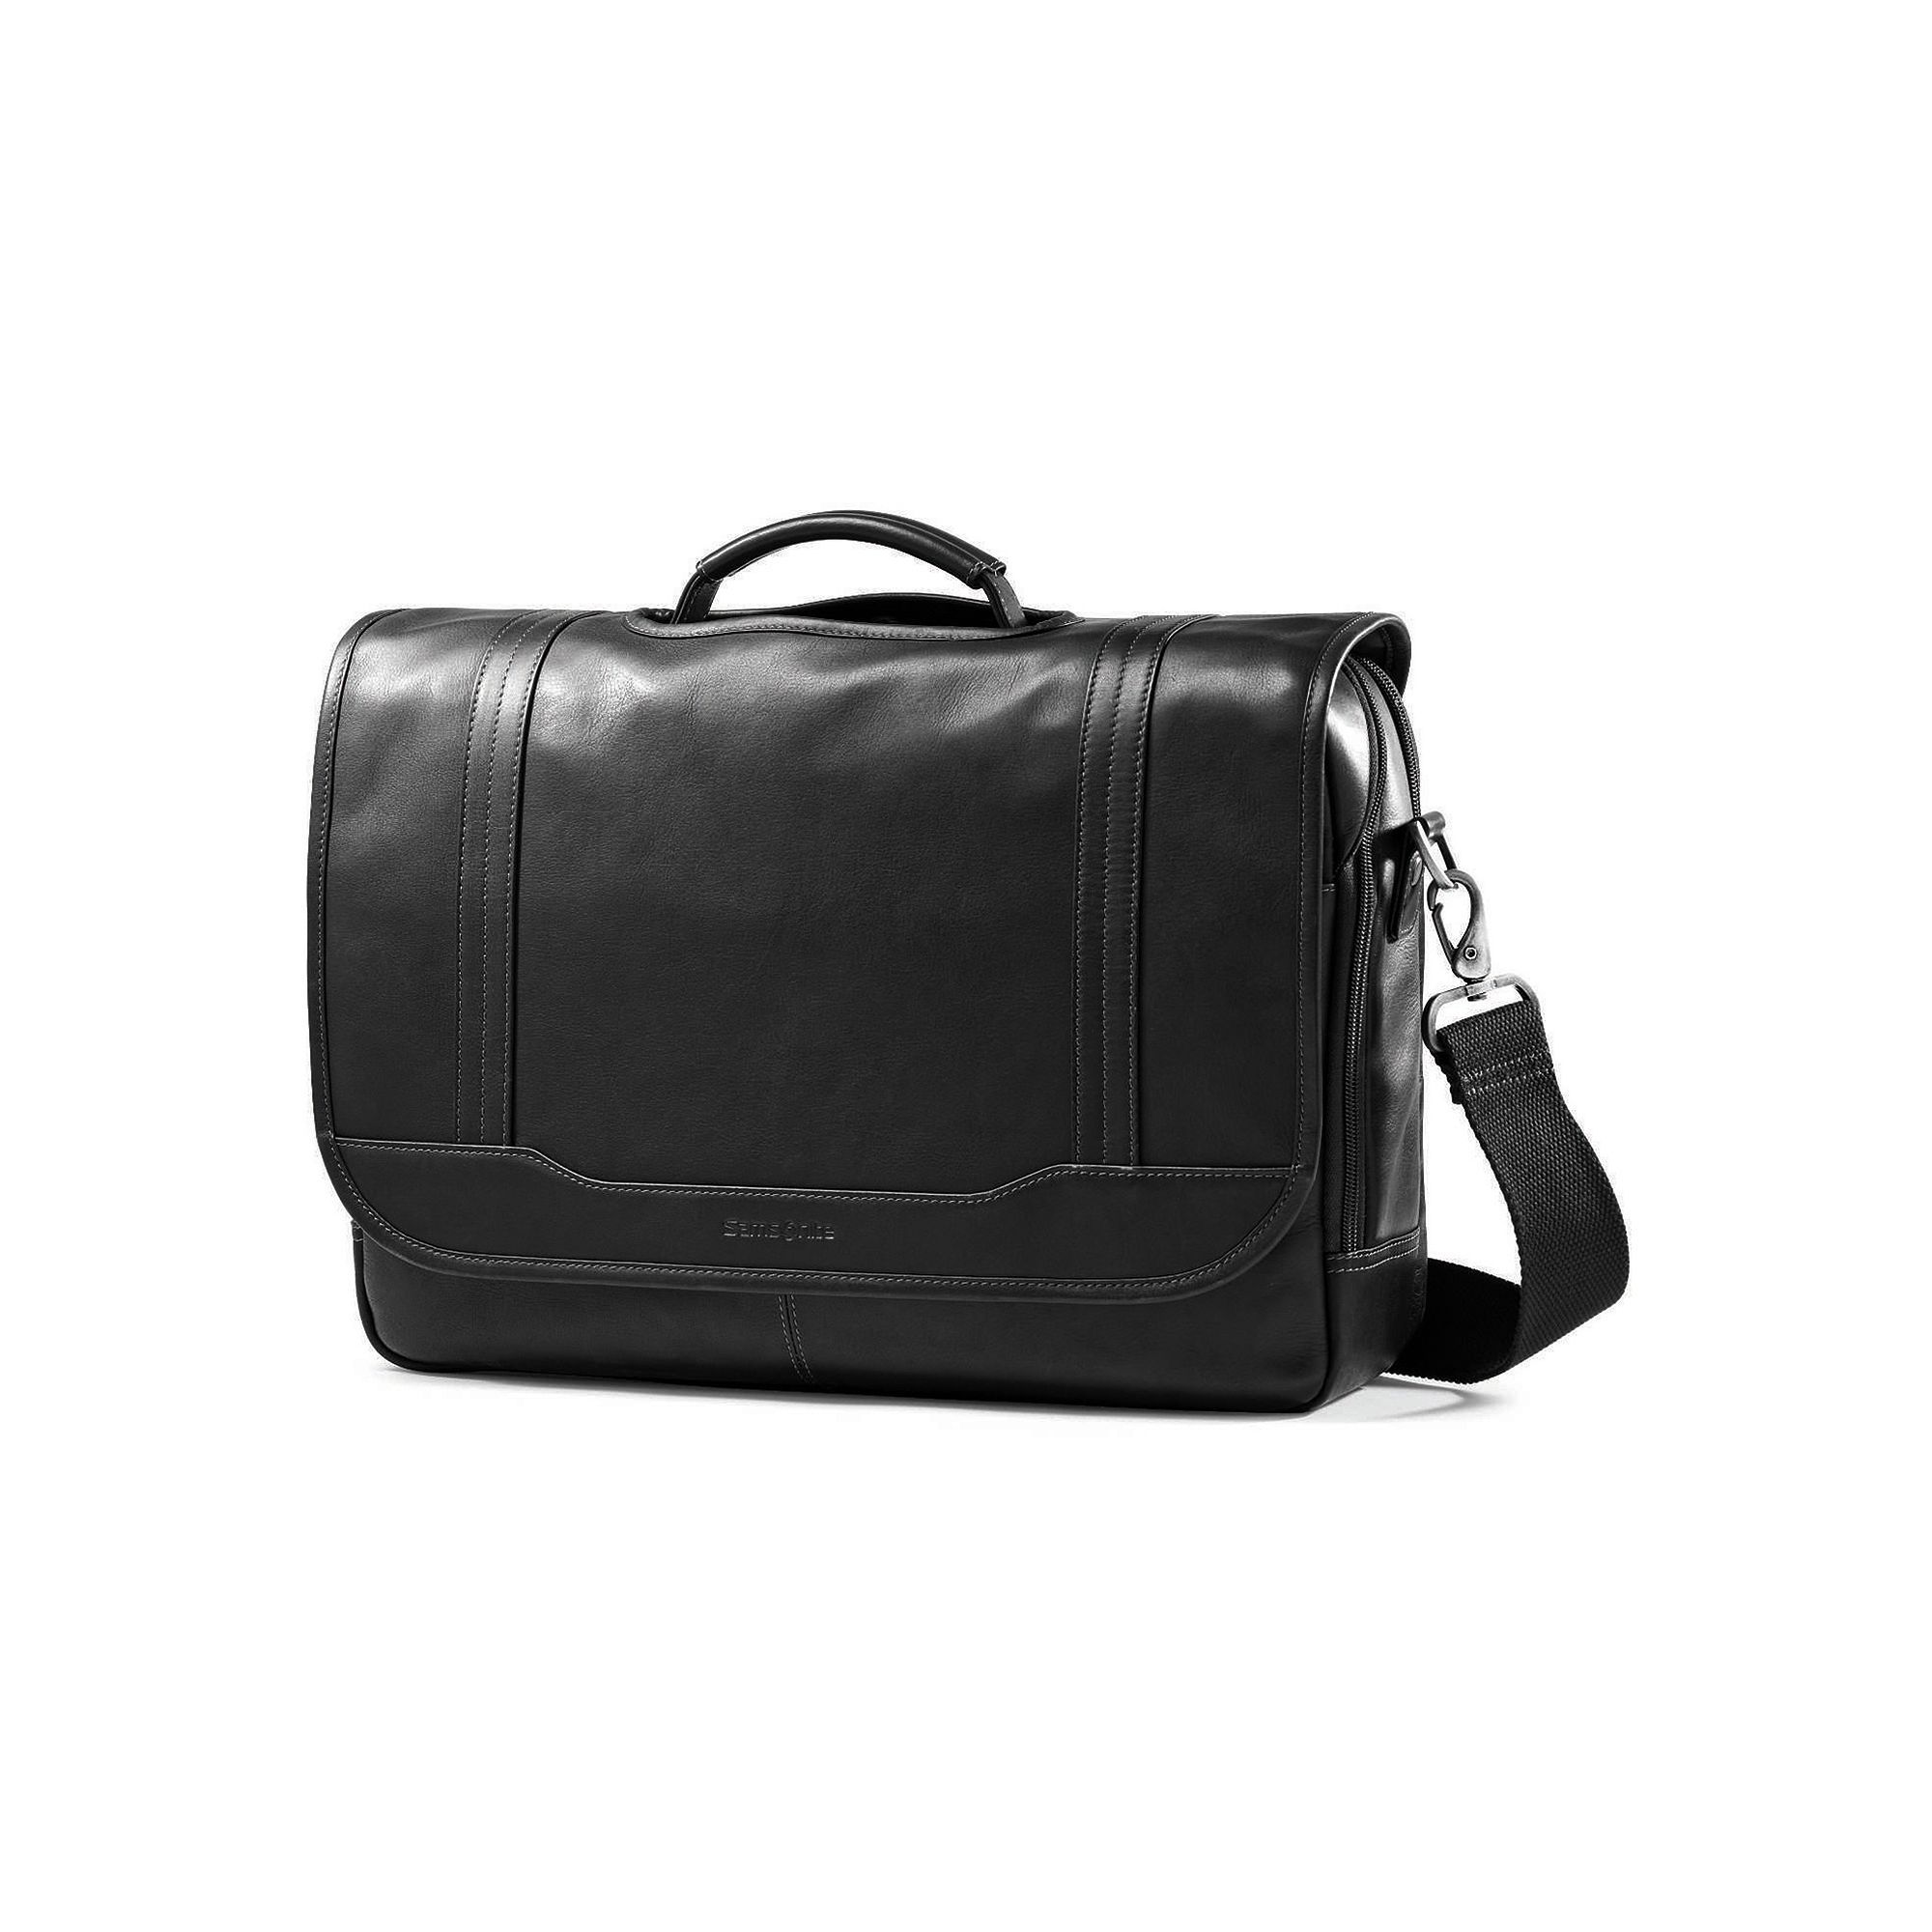 Samsonite Colombian Leather Flapover Laptop Briefcase  ea0824995068a